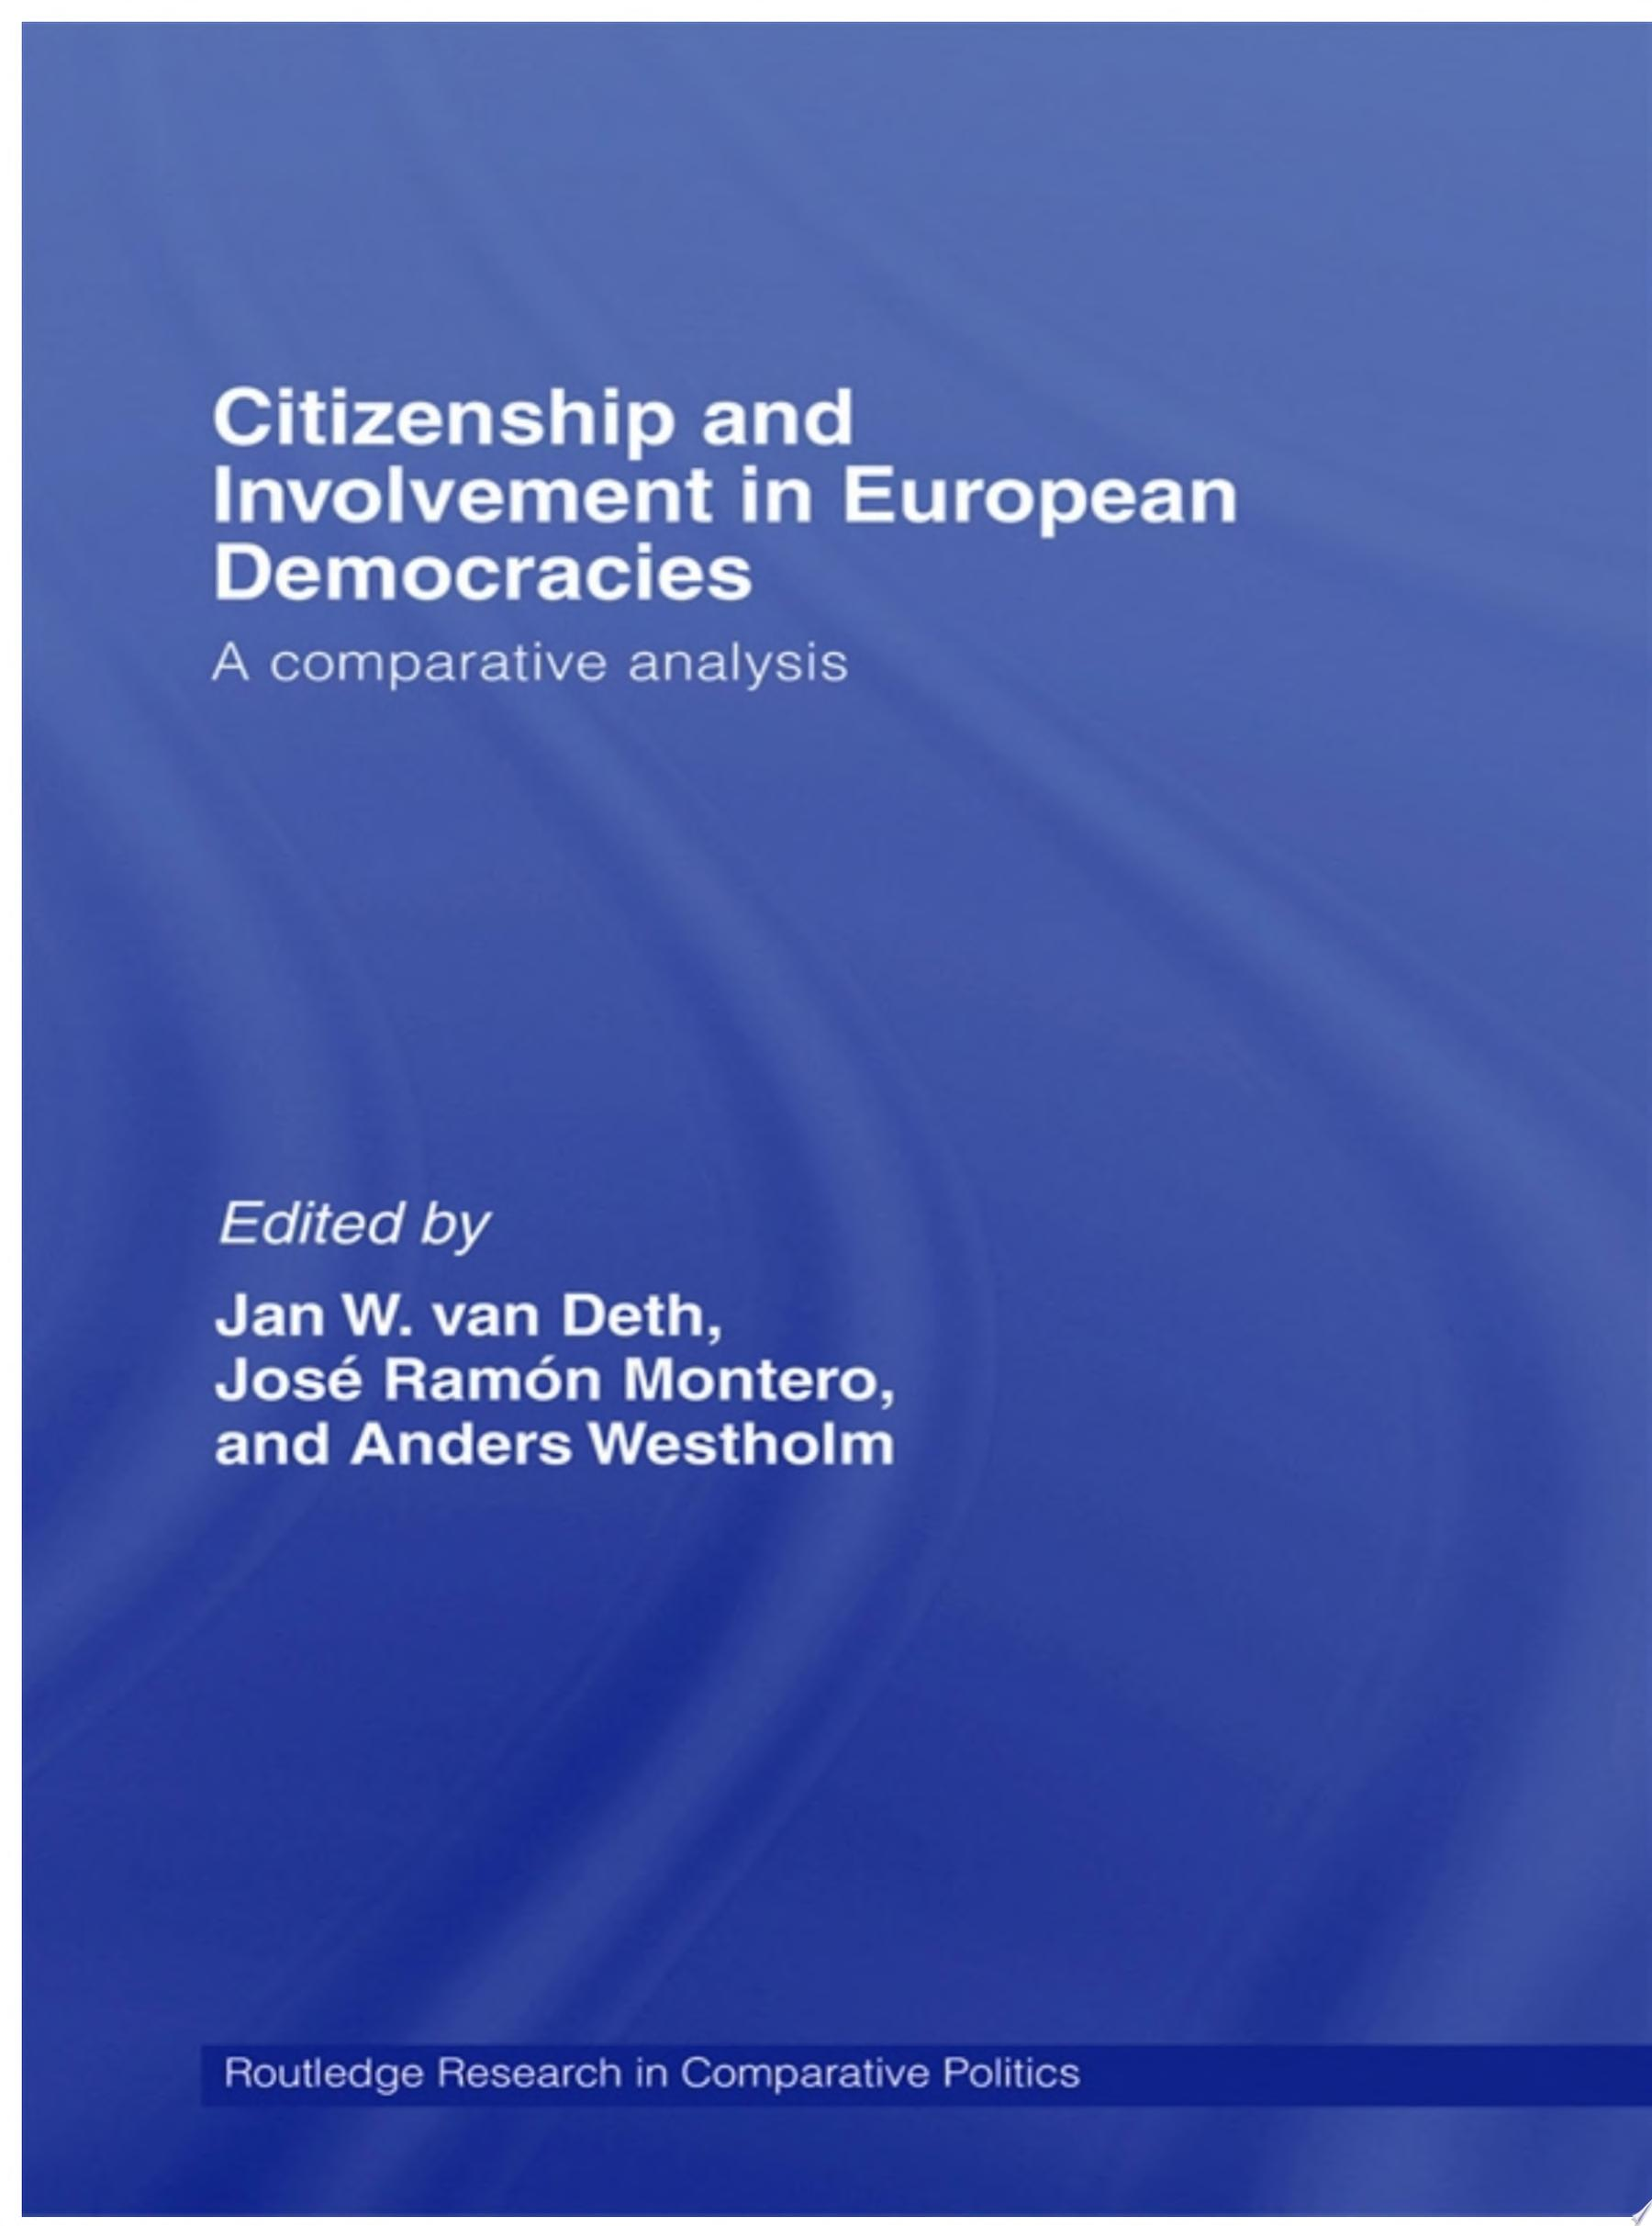 Citizenship and Involvement in European Democracies